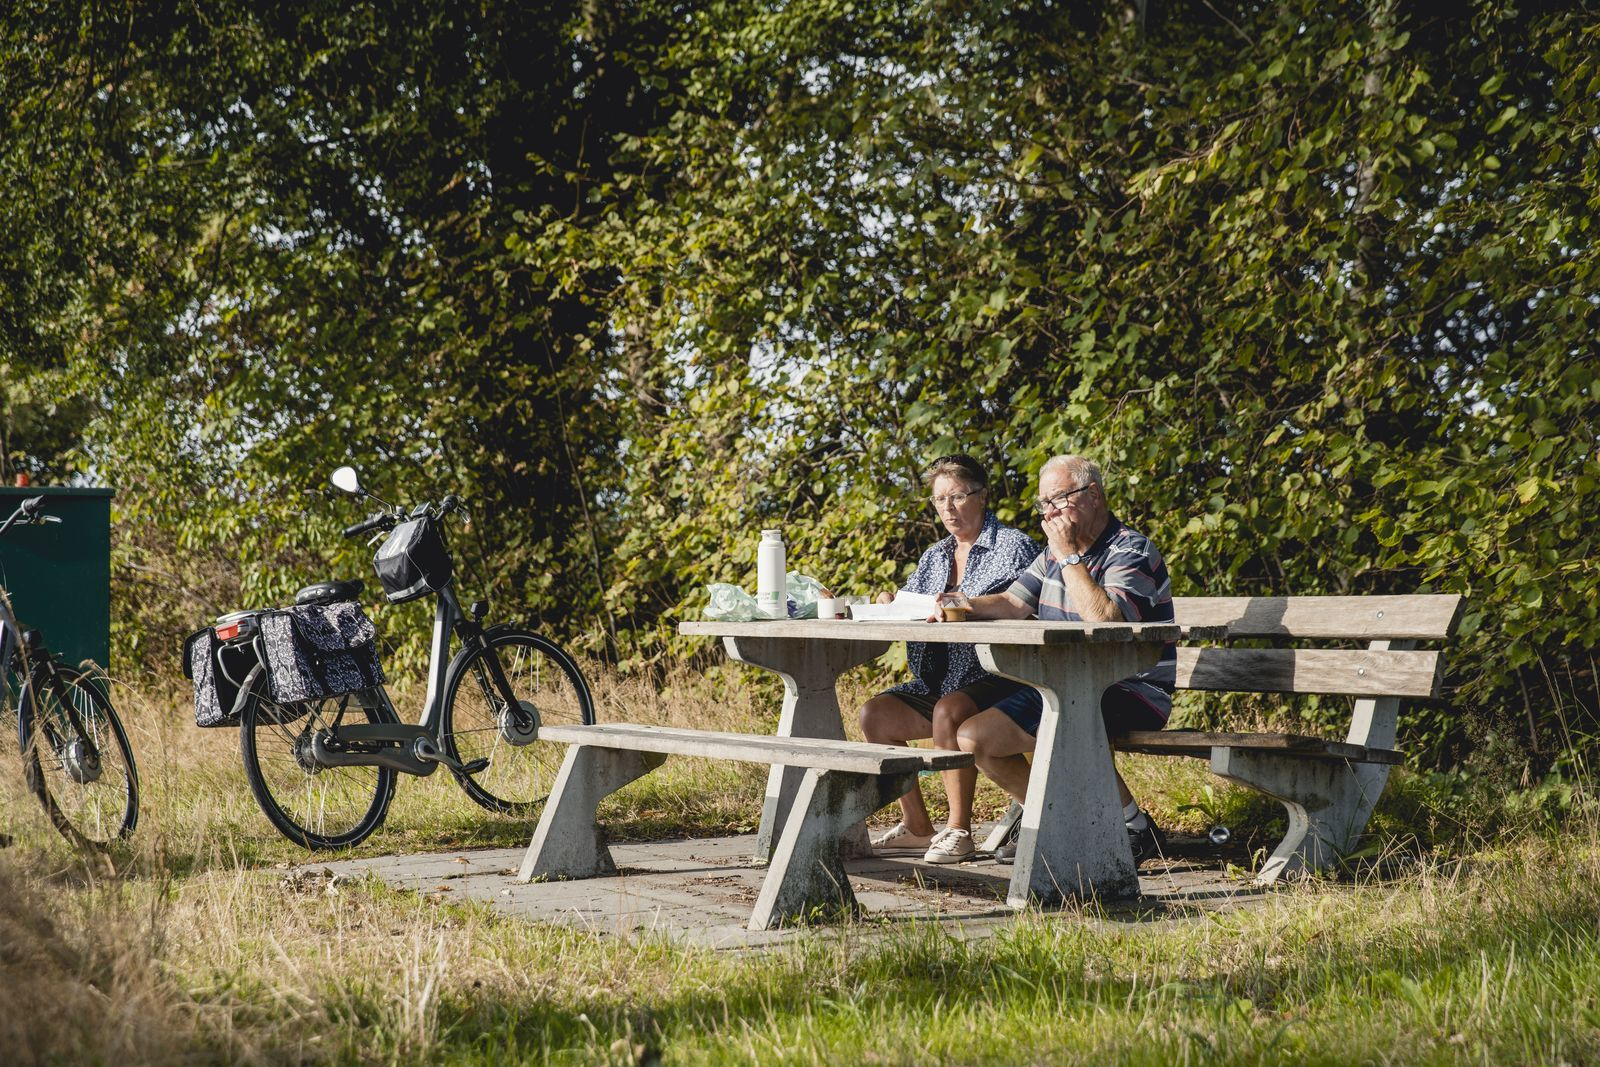 Reggestreek Fiets4daagse stay 6 days in a luxury accommodation including half board